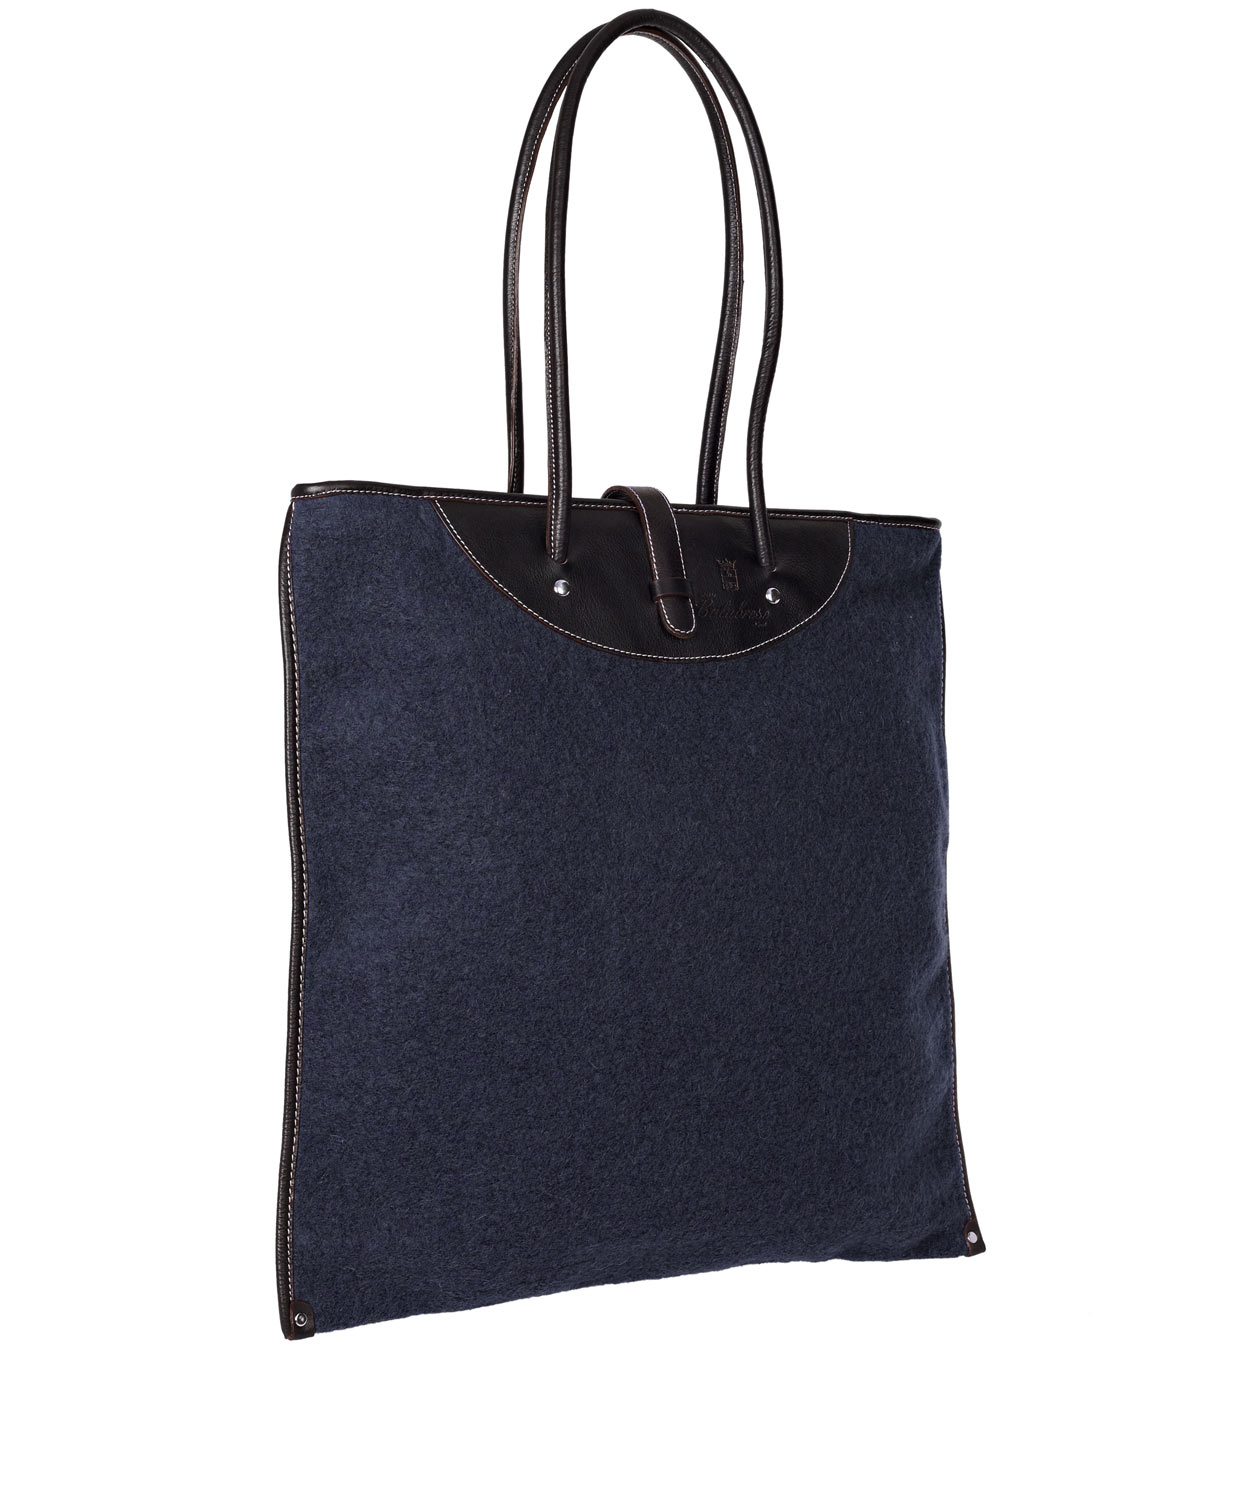 Calabrese Bags Navy Rotolo Boiled Wool Tote Bag in Blue for Men